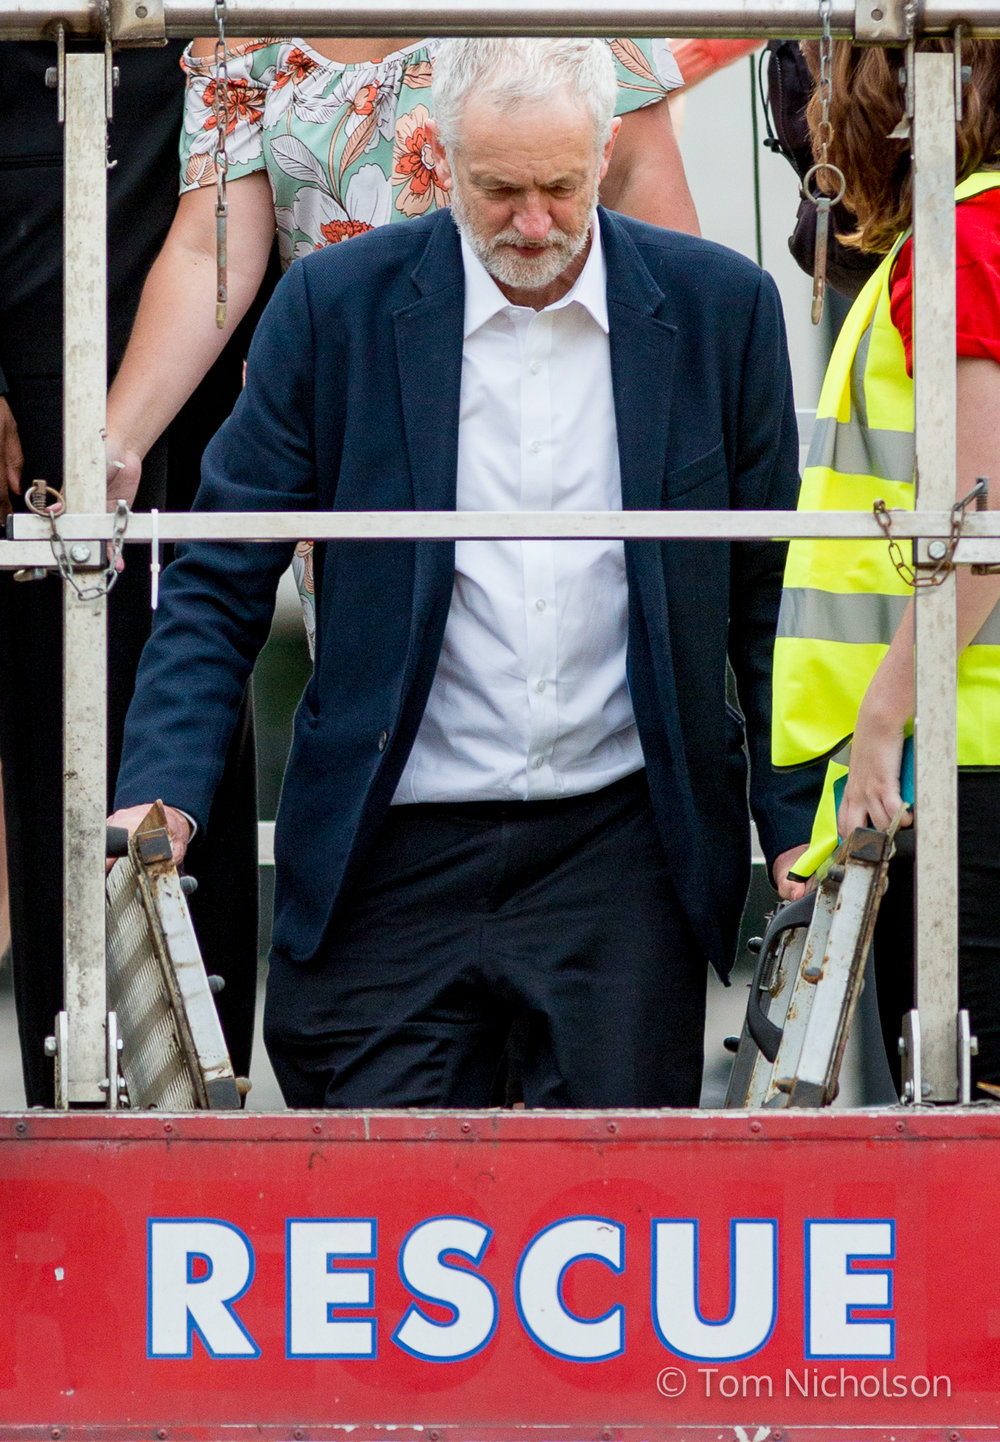 27/06/2016. London, UK. Leader of the Labour Party Jeremy Corbyn departs after speaking at a 'Momentum' demonstration showing support for him, after many of the Labour Shadow Cabinet resigned following the British public's vote to leave the EU